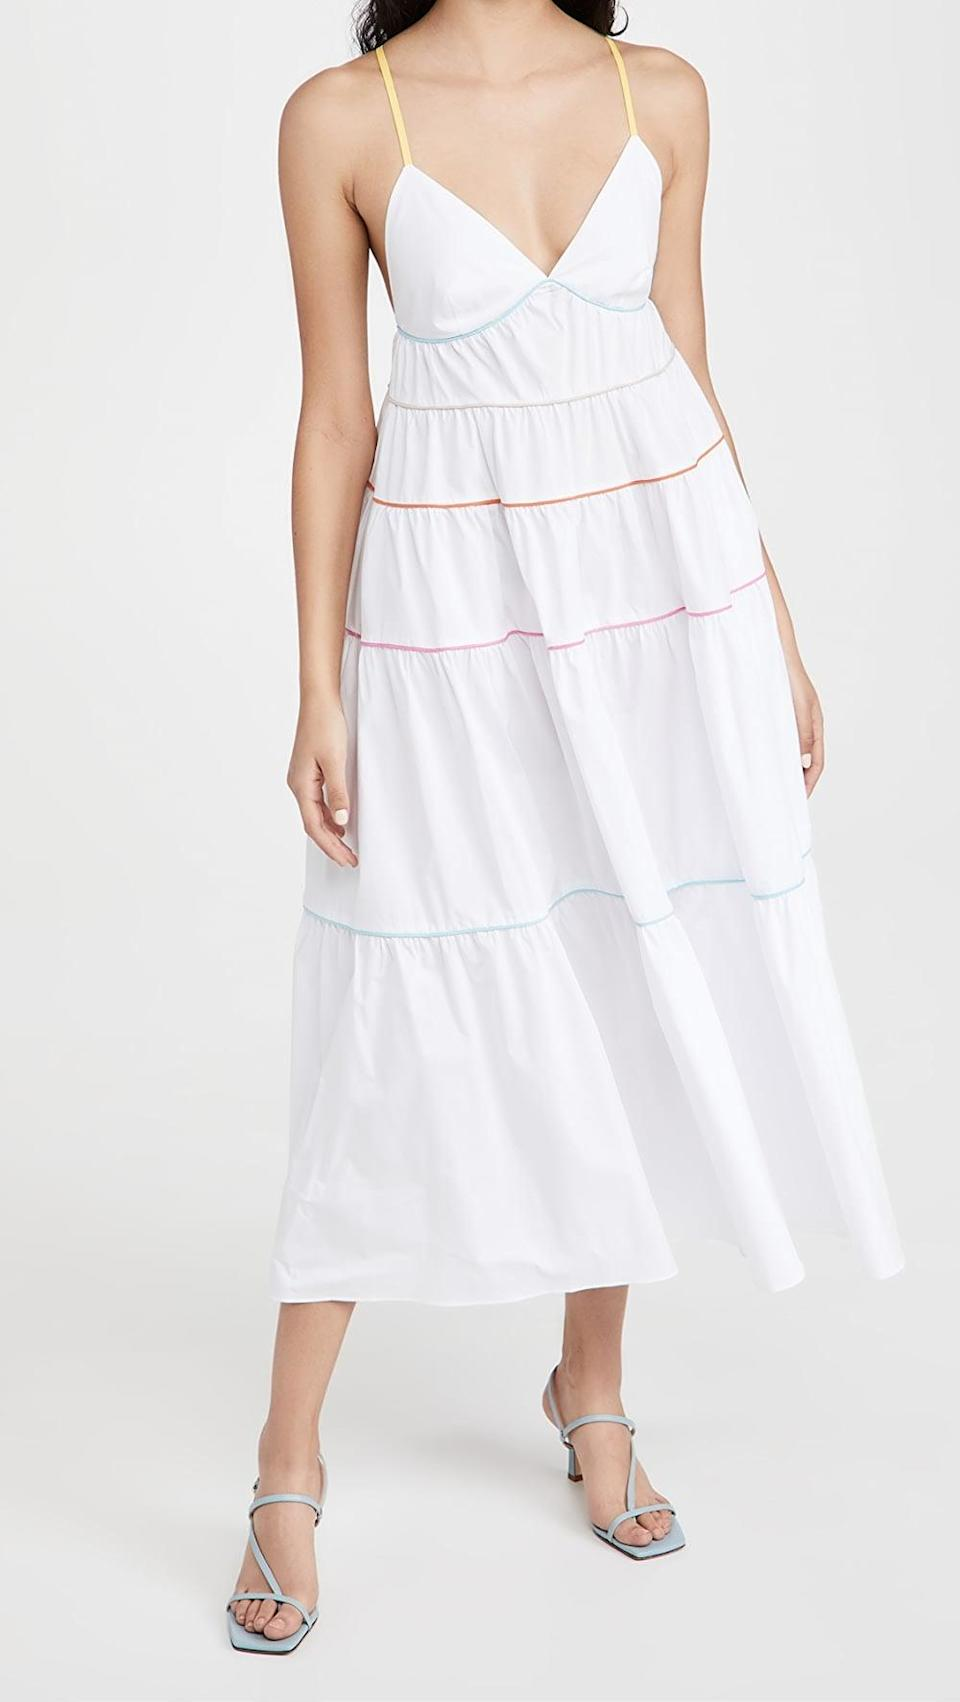 <p>This <span>Staud Cleo Dress</span> ($315) is adorable. The different color trims add something different to a classic silhouette.</p>